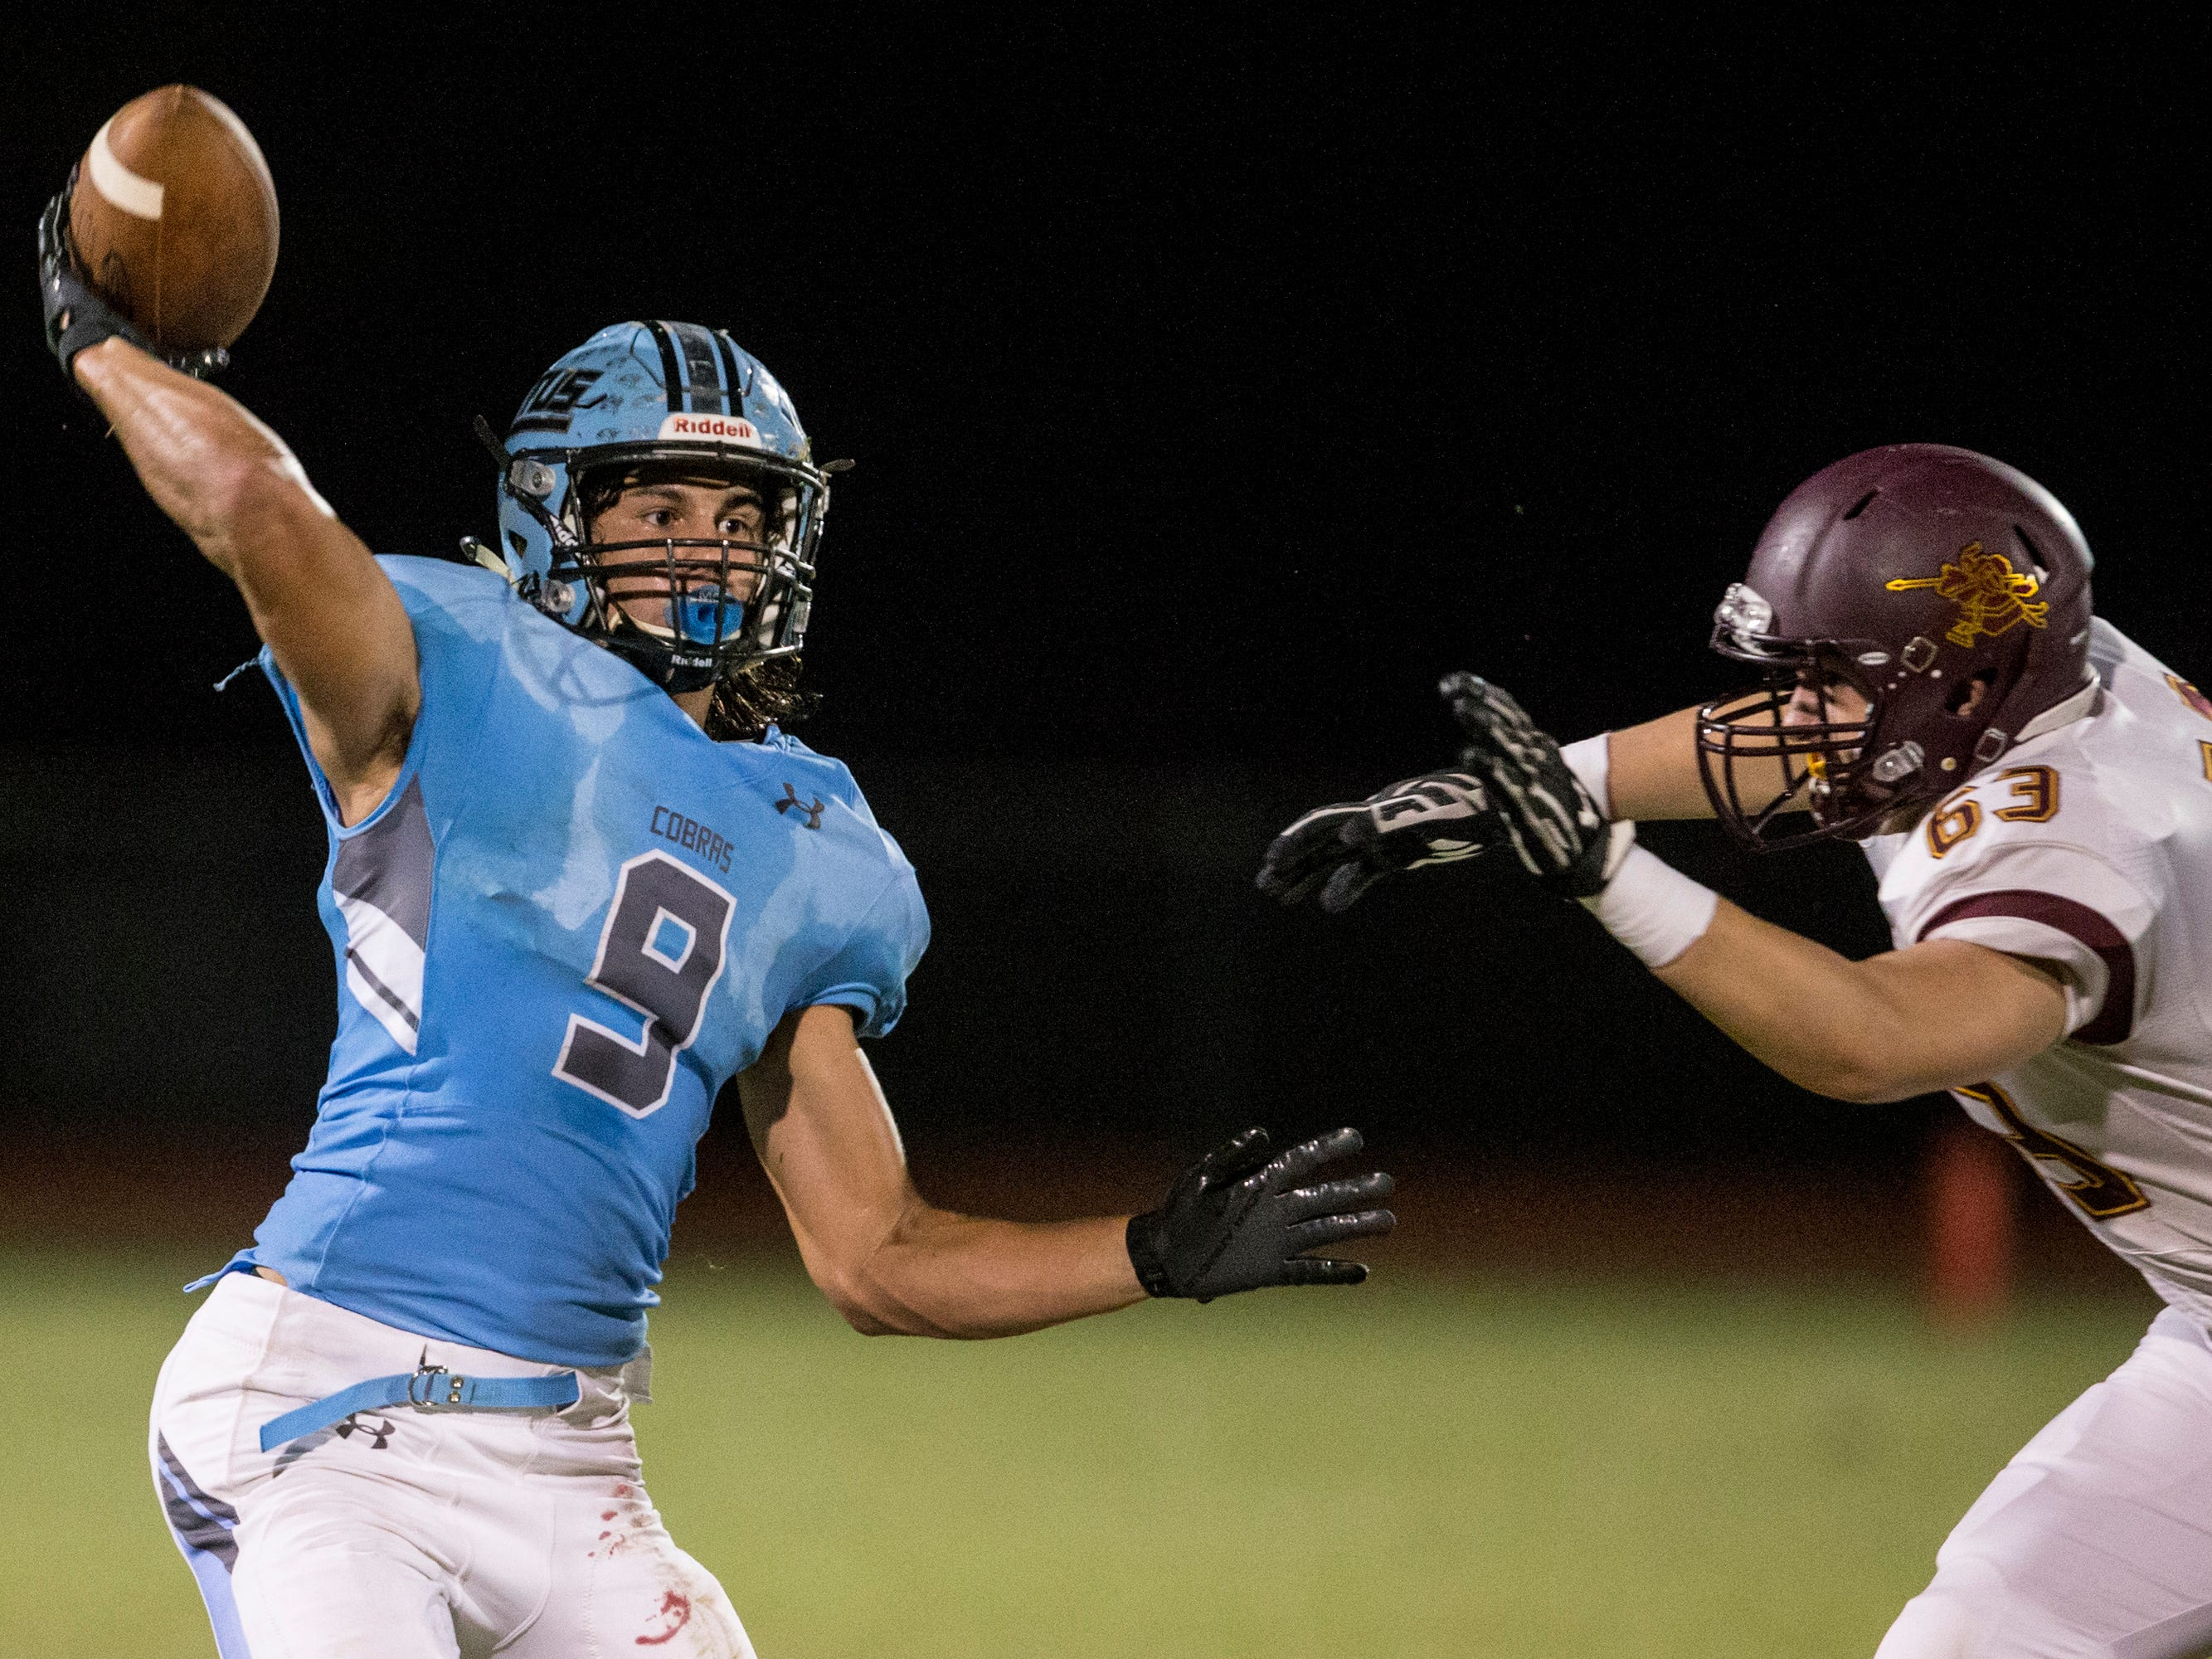 Cactus' Zach Cullop throwsagainst Salpointe in the 2nd quarter on Friday, Sept. 14, 2018, at Cactus High School in Glendale, Ariz.#azhsfb